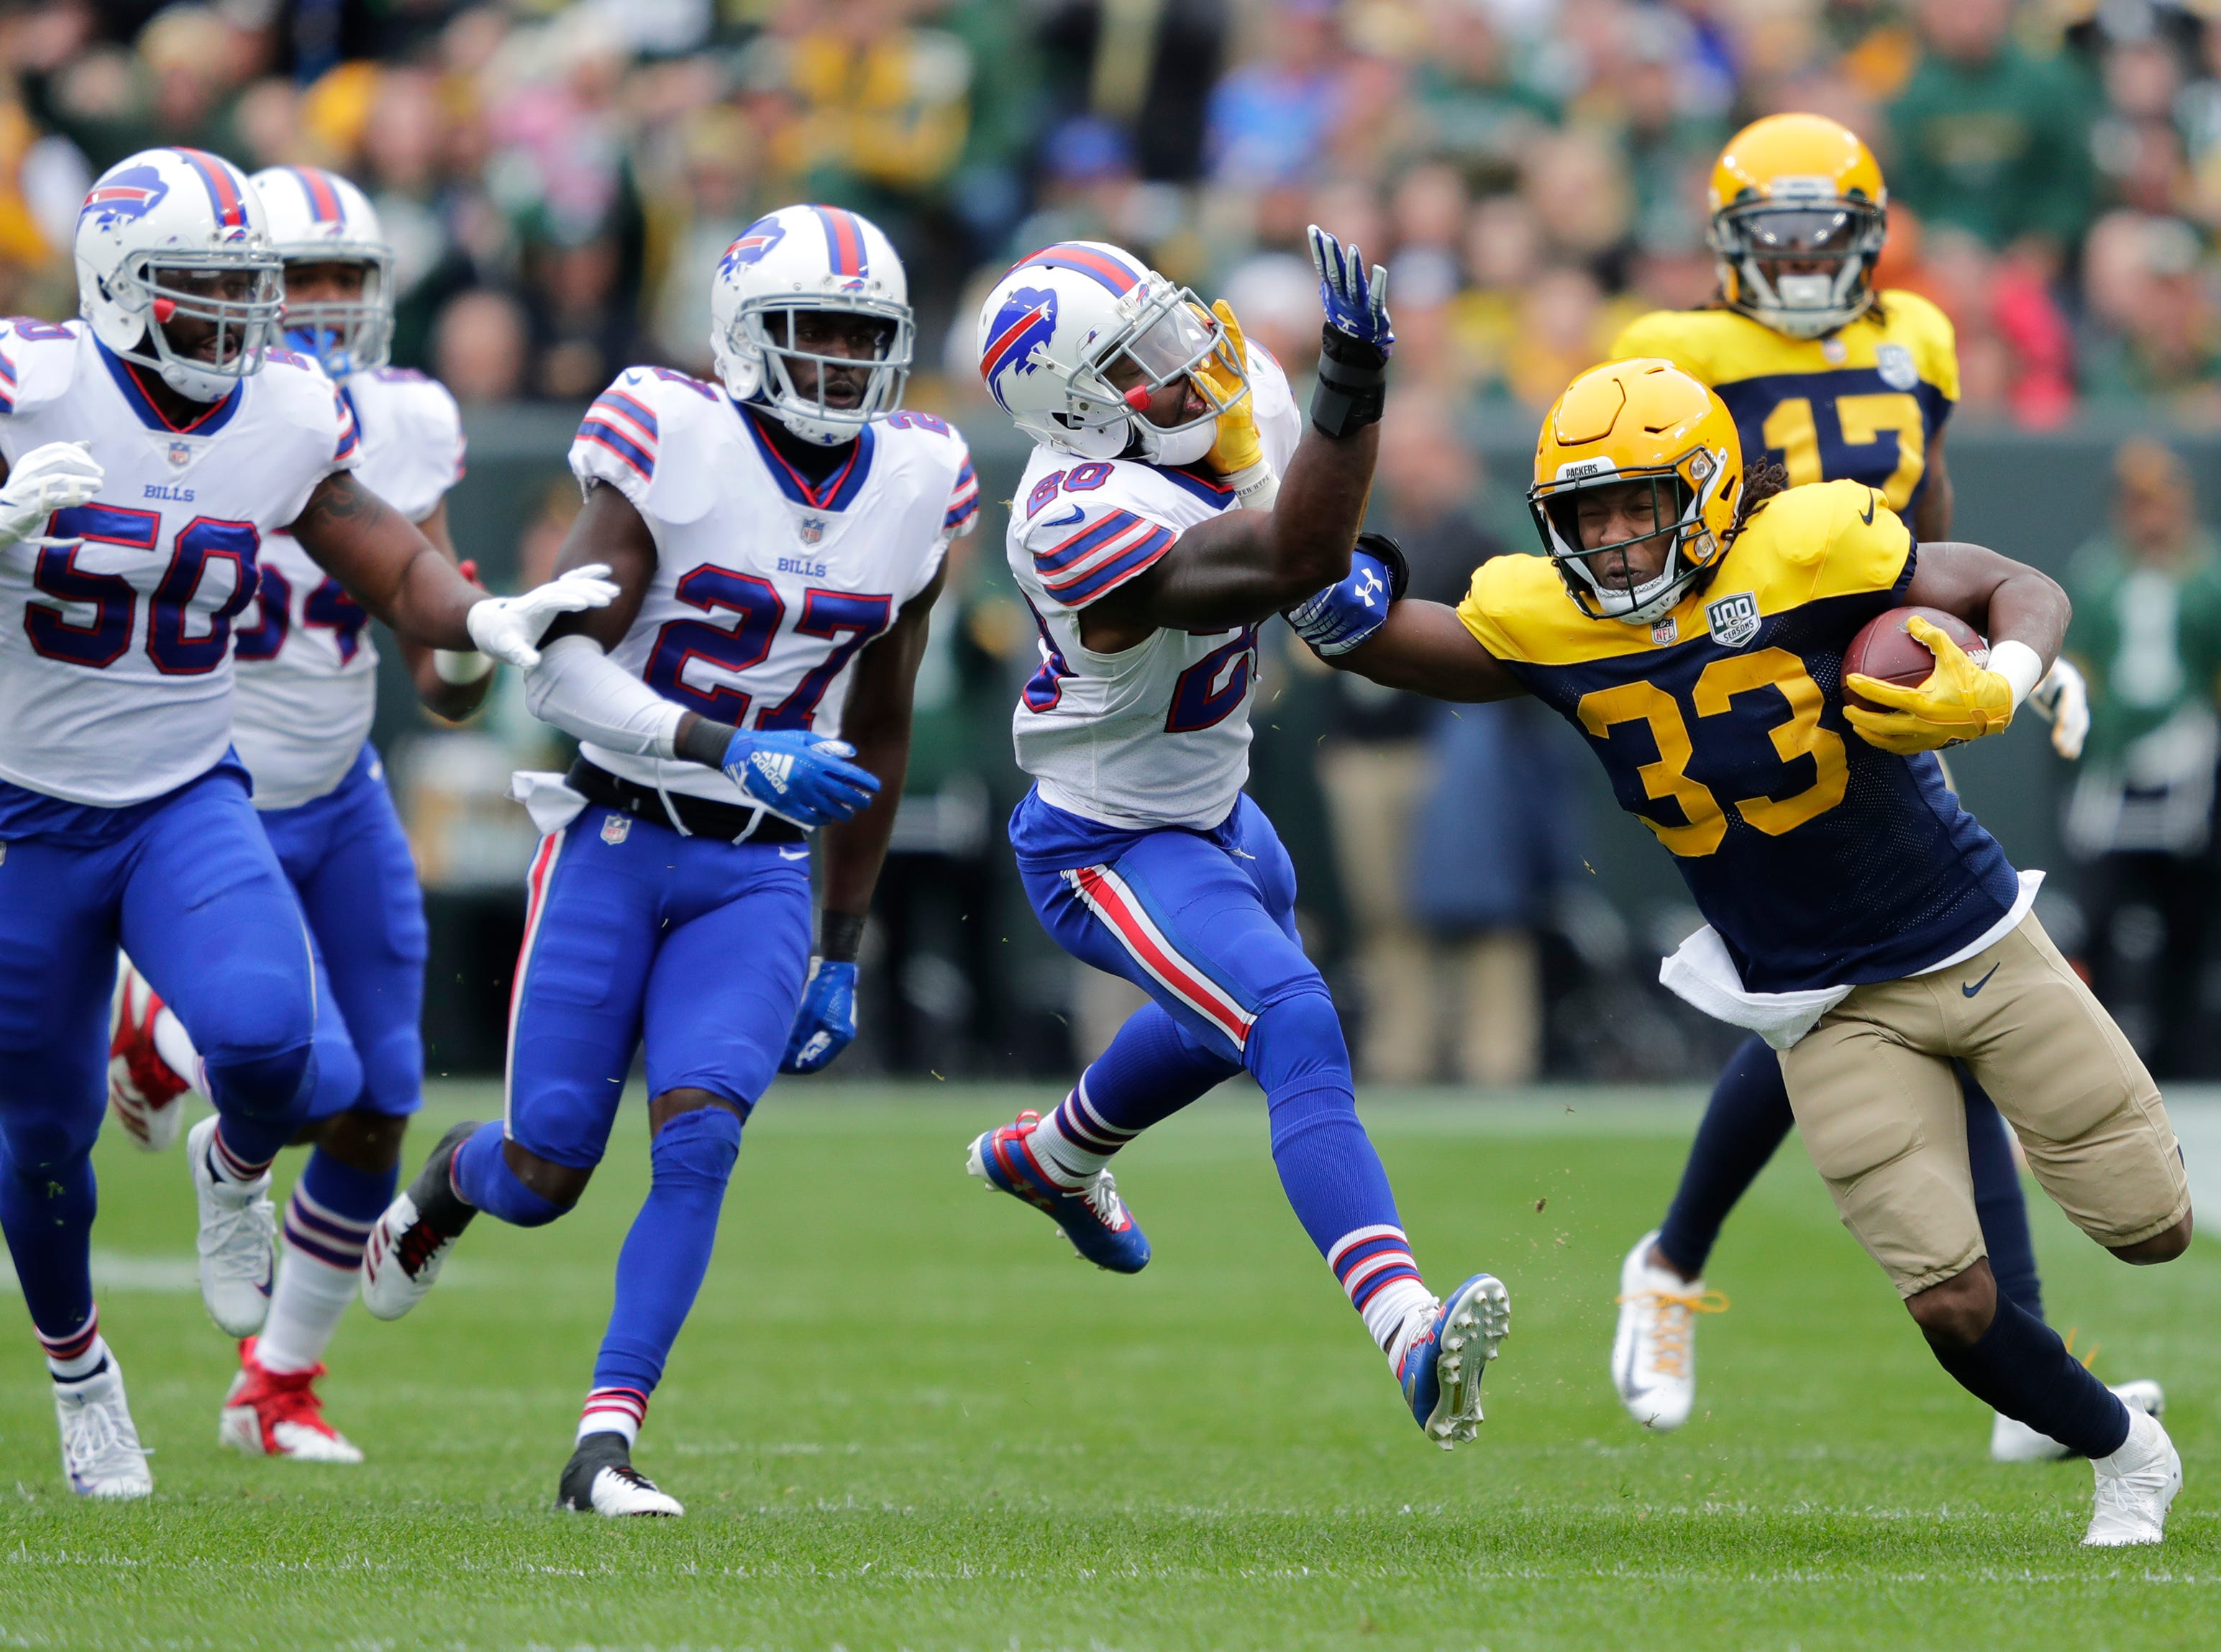 Green Bay Packers running back Aaron Jones (33) stiff arms Buffalo Bills defensive back Rafael Bush (20) on a long first down run in the first quarter during their football game Sunday, Sept. 30, 2018, at Lambeau Field in Green Bay, Wis. Dan Powers/USA TODAY NETWORK-Wisconsin